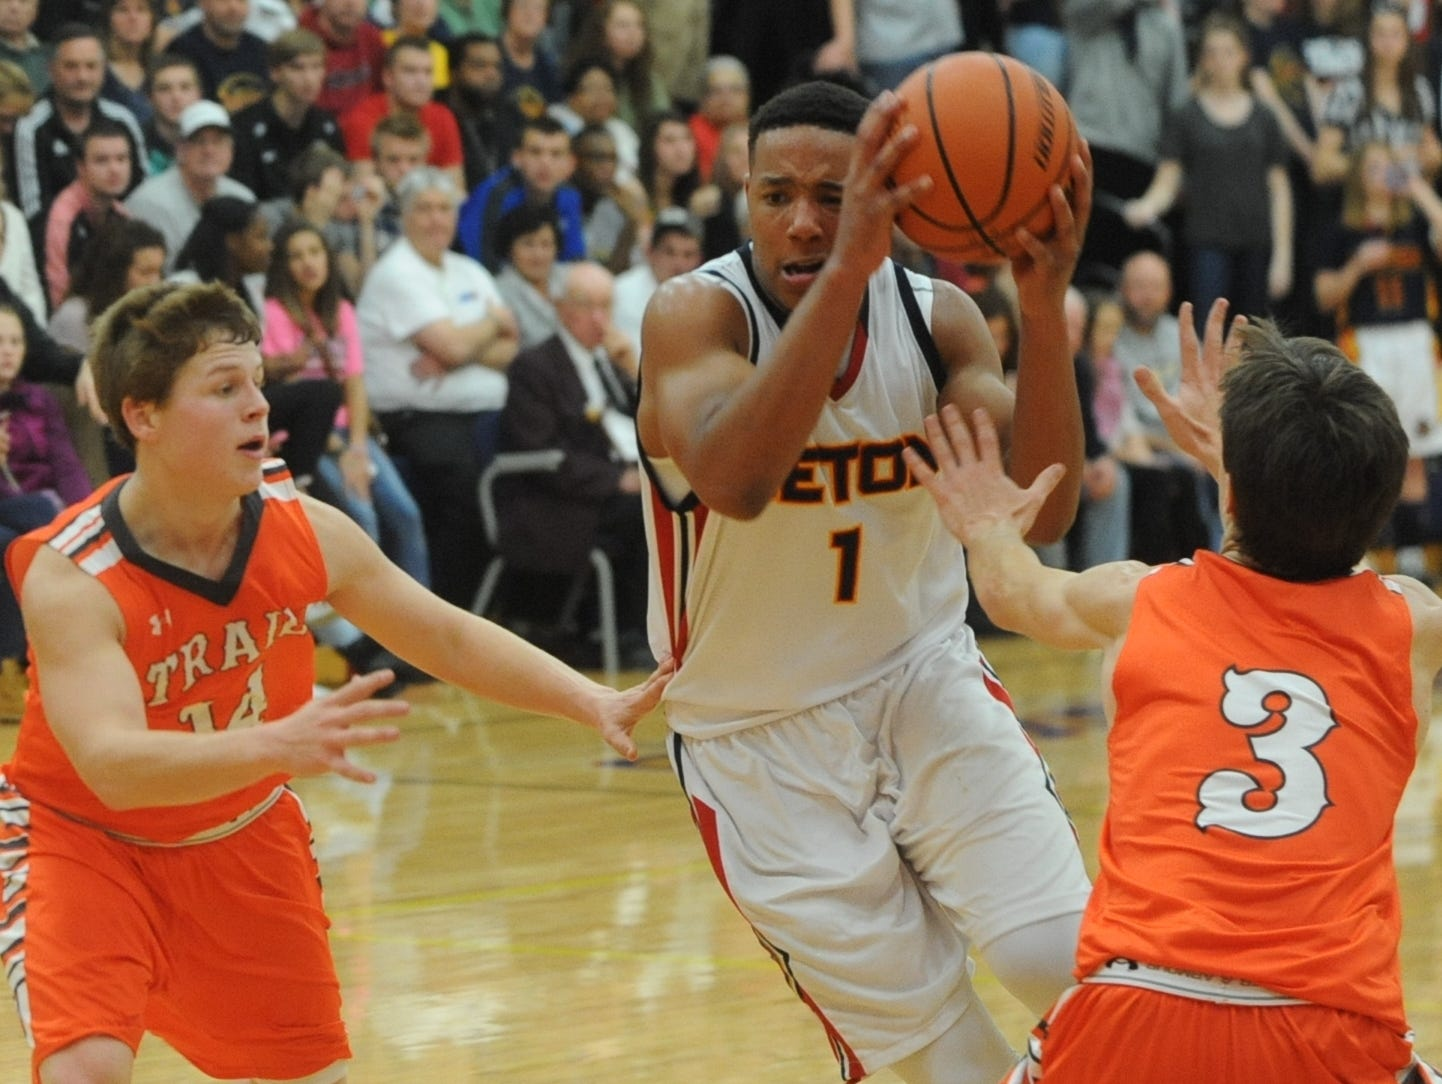 Seton Catholic's Desmond Bane makes a move toward the basket during Friday night's season-opening victory over National Trail. He set the school's all-time scoring record with his 1,208th point during the game at Chuck Mosey Gymnasium.